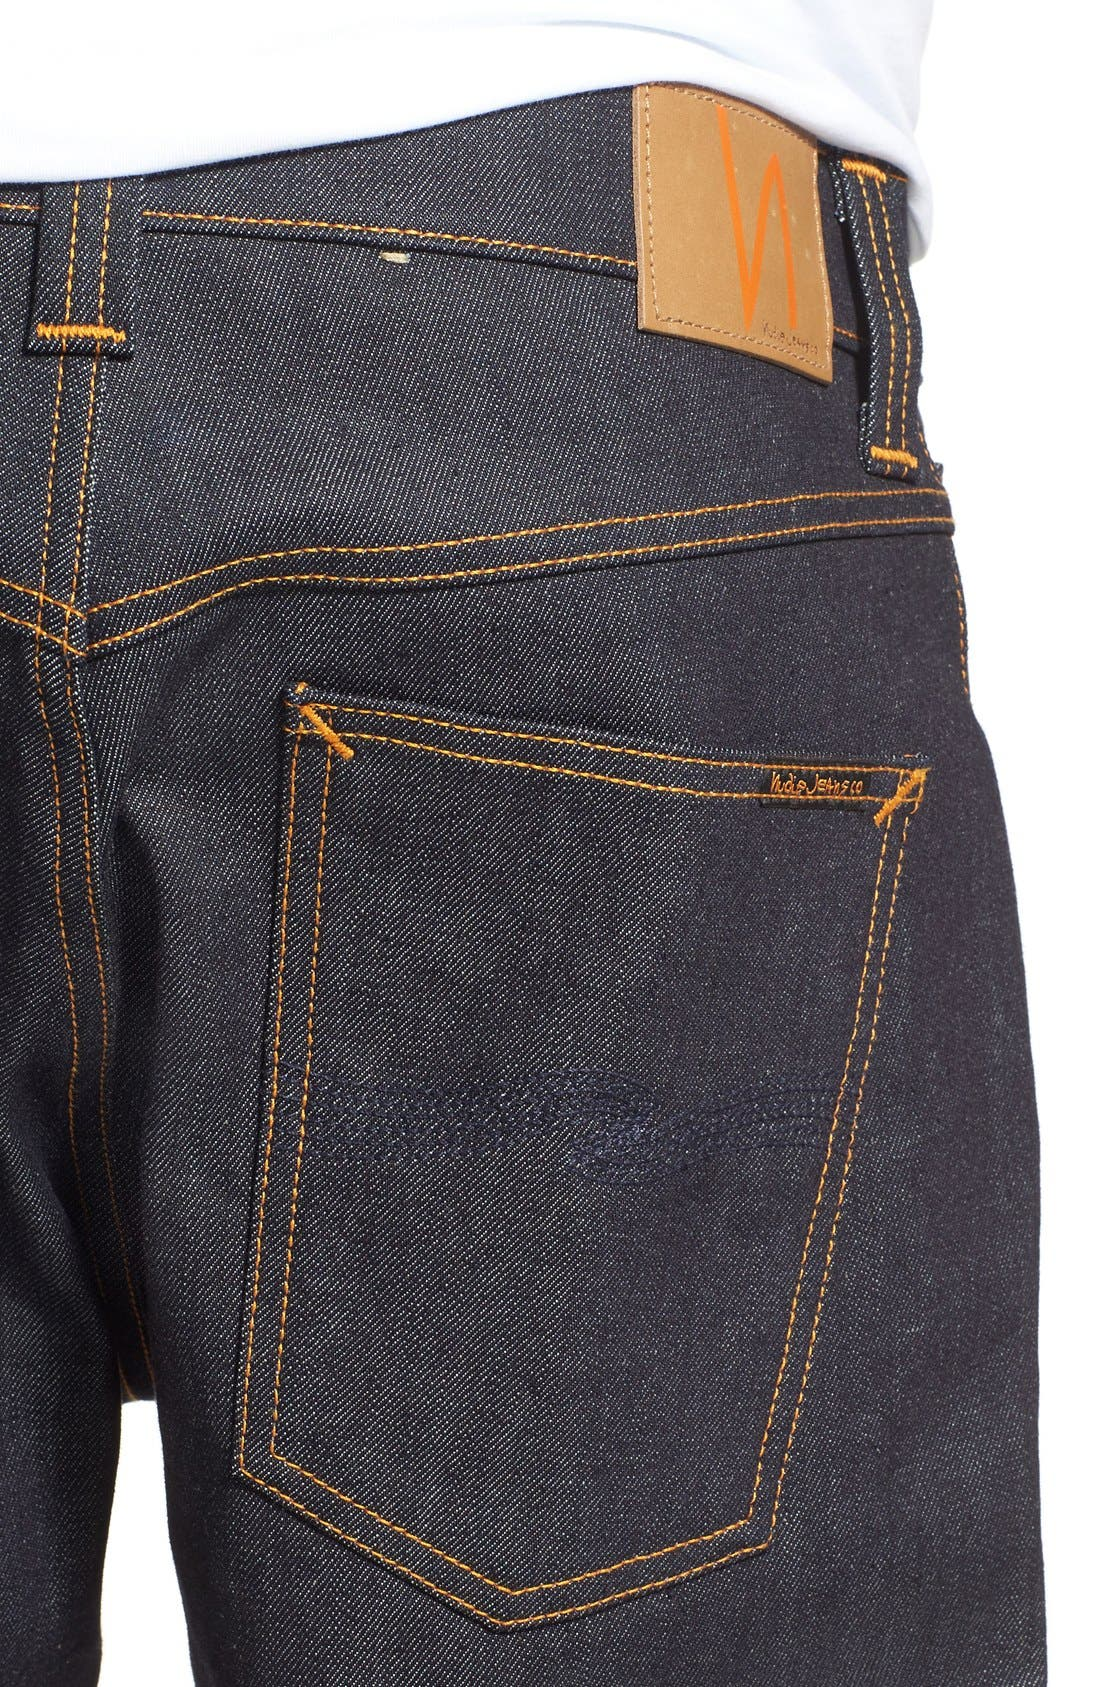 'Brute Knut' Slouchy Slim Fit Selvedge Jeans,                             Alternate thumbnail 4, color,                             411